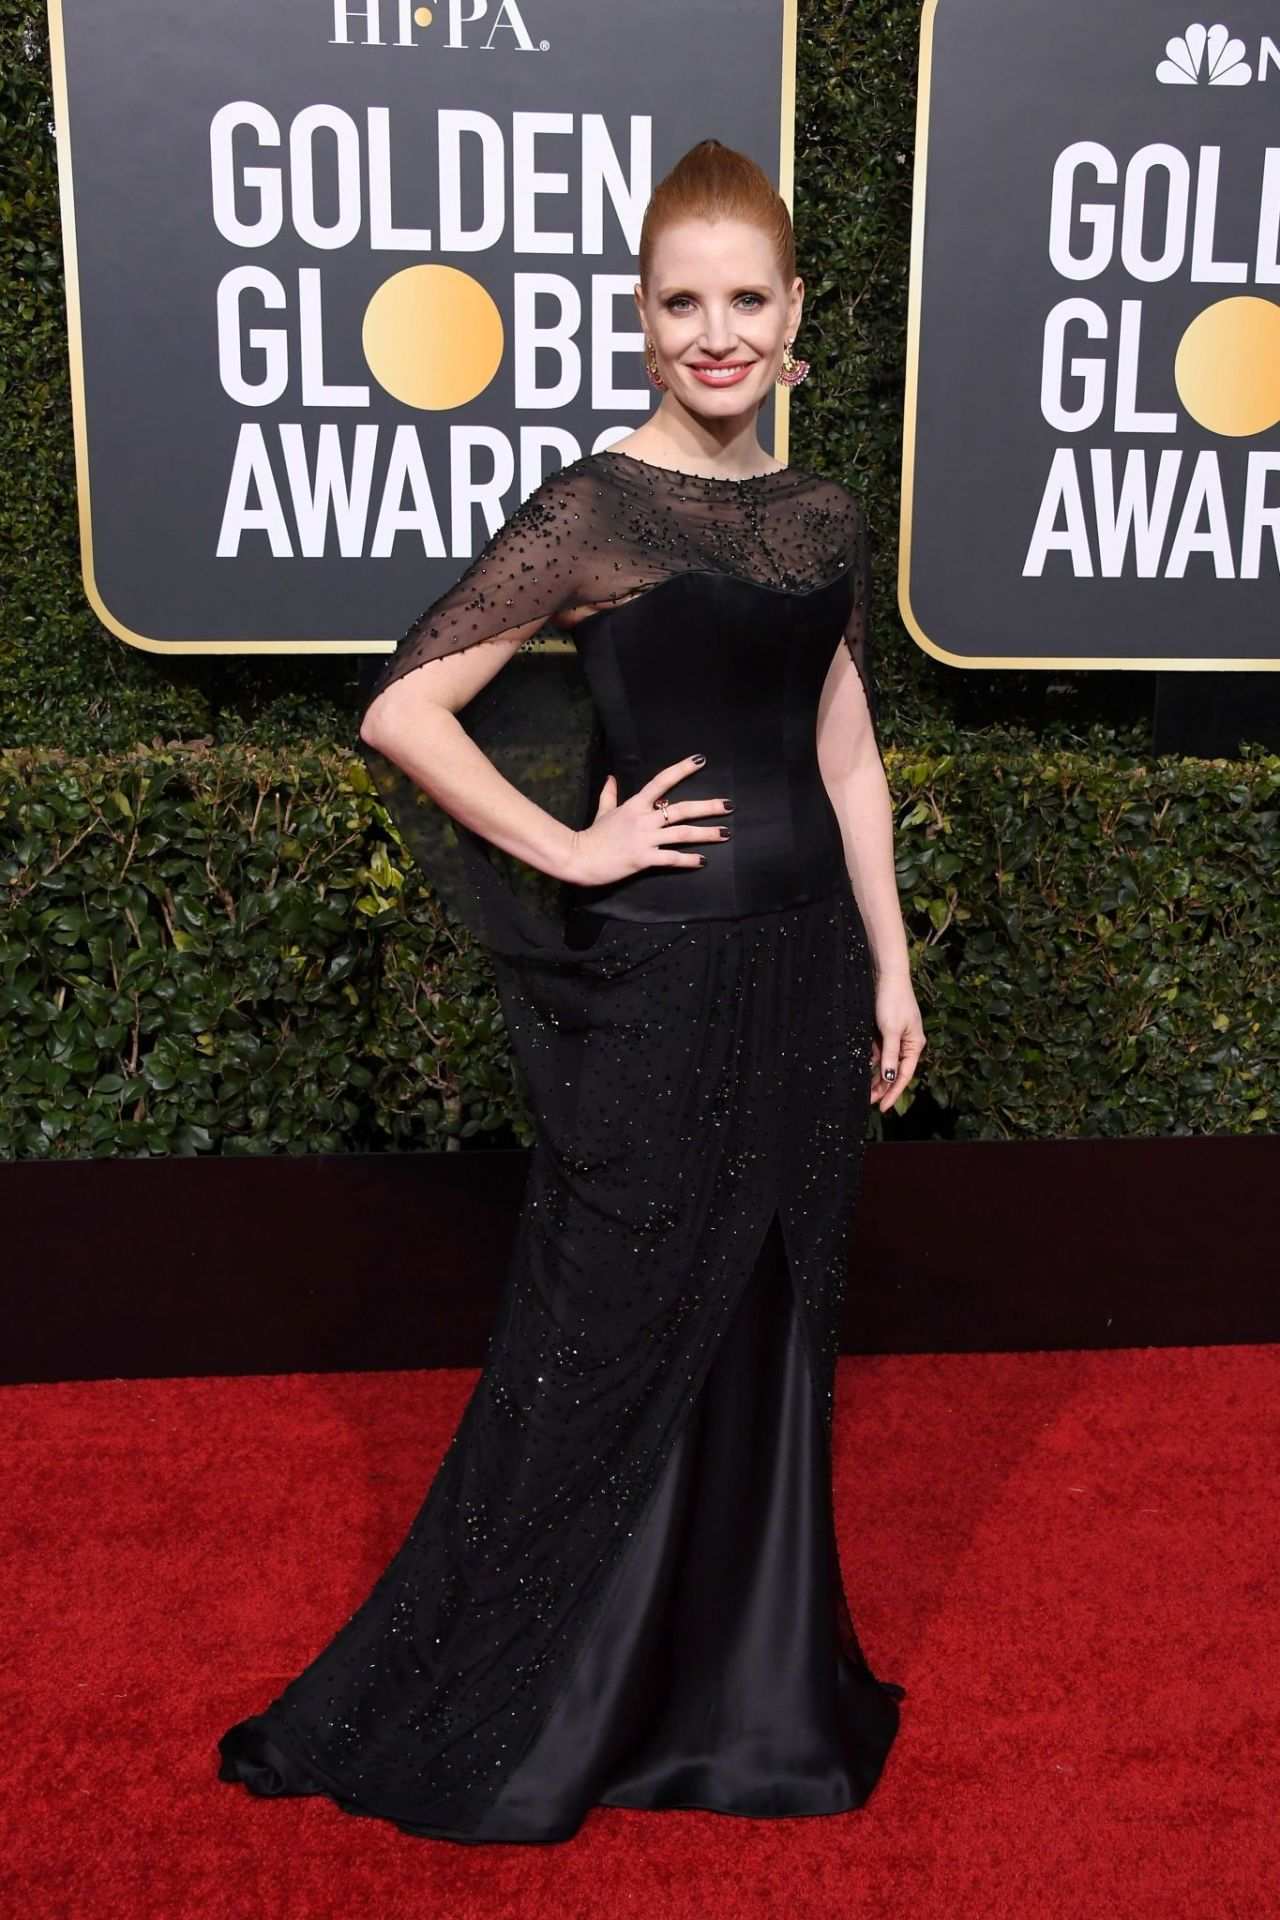 Jessica Chastain 2019 Golden Globe Awards Red Carpet